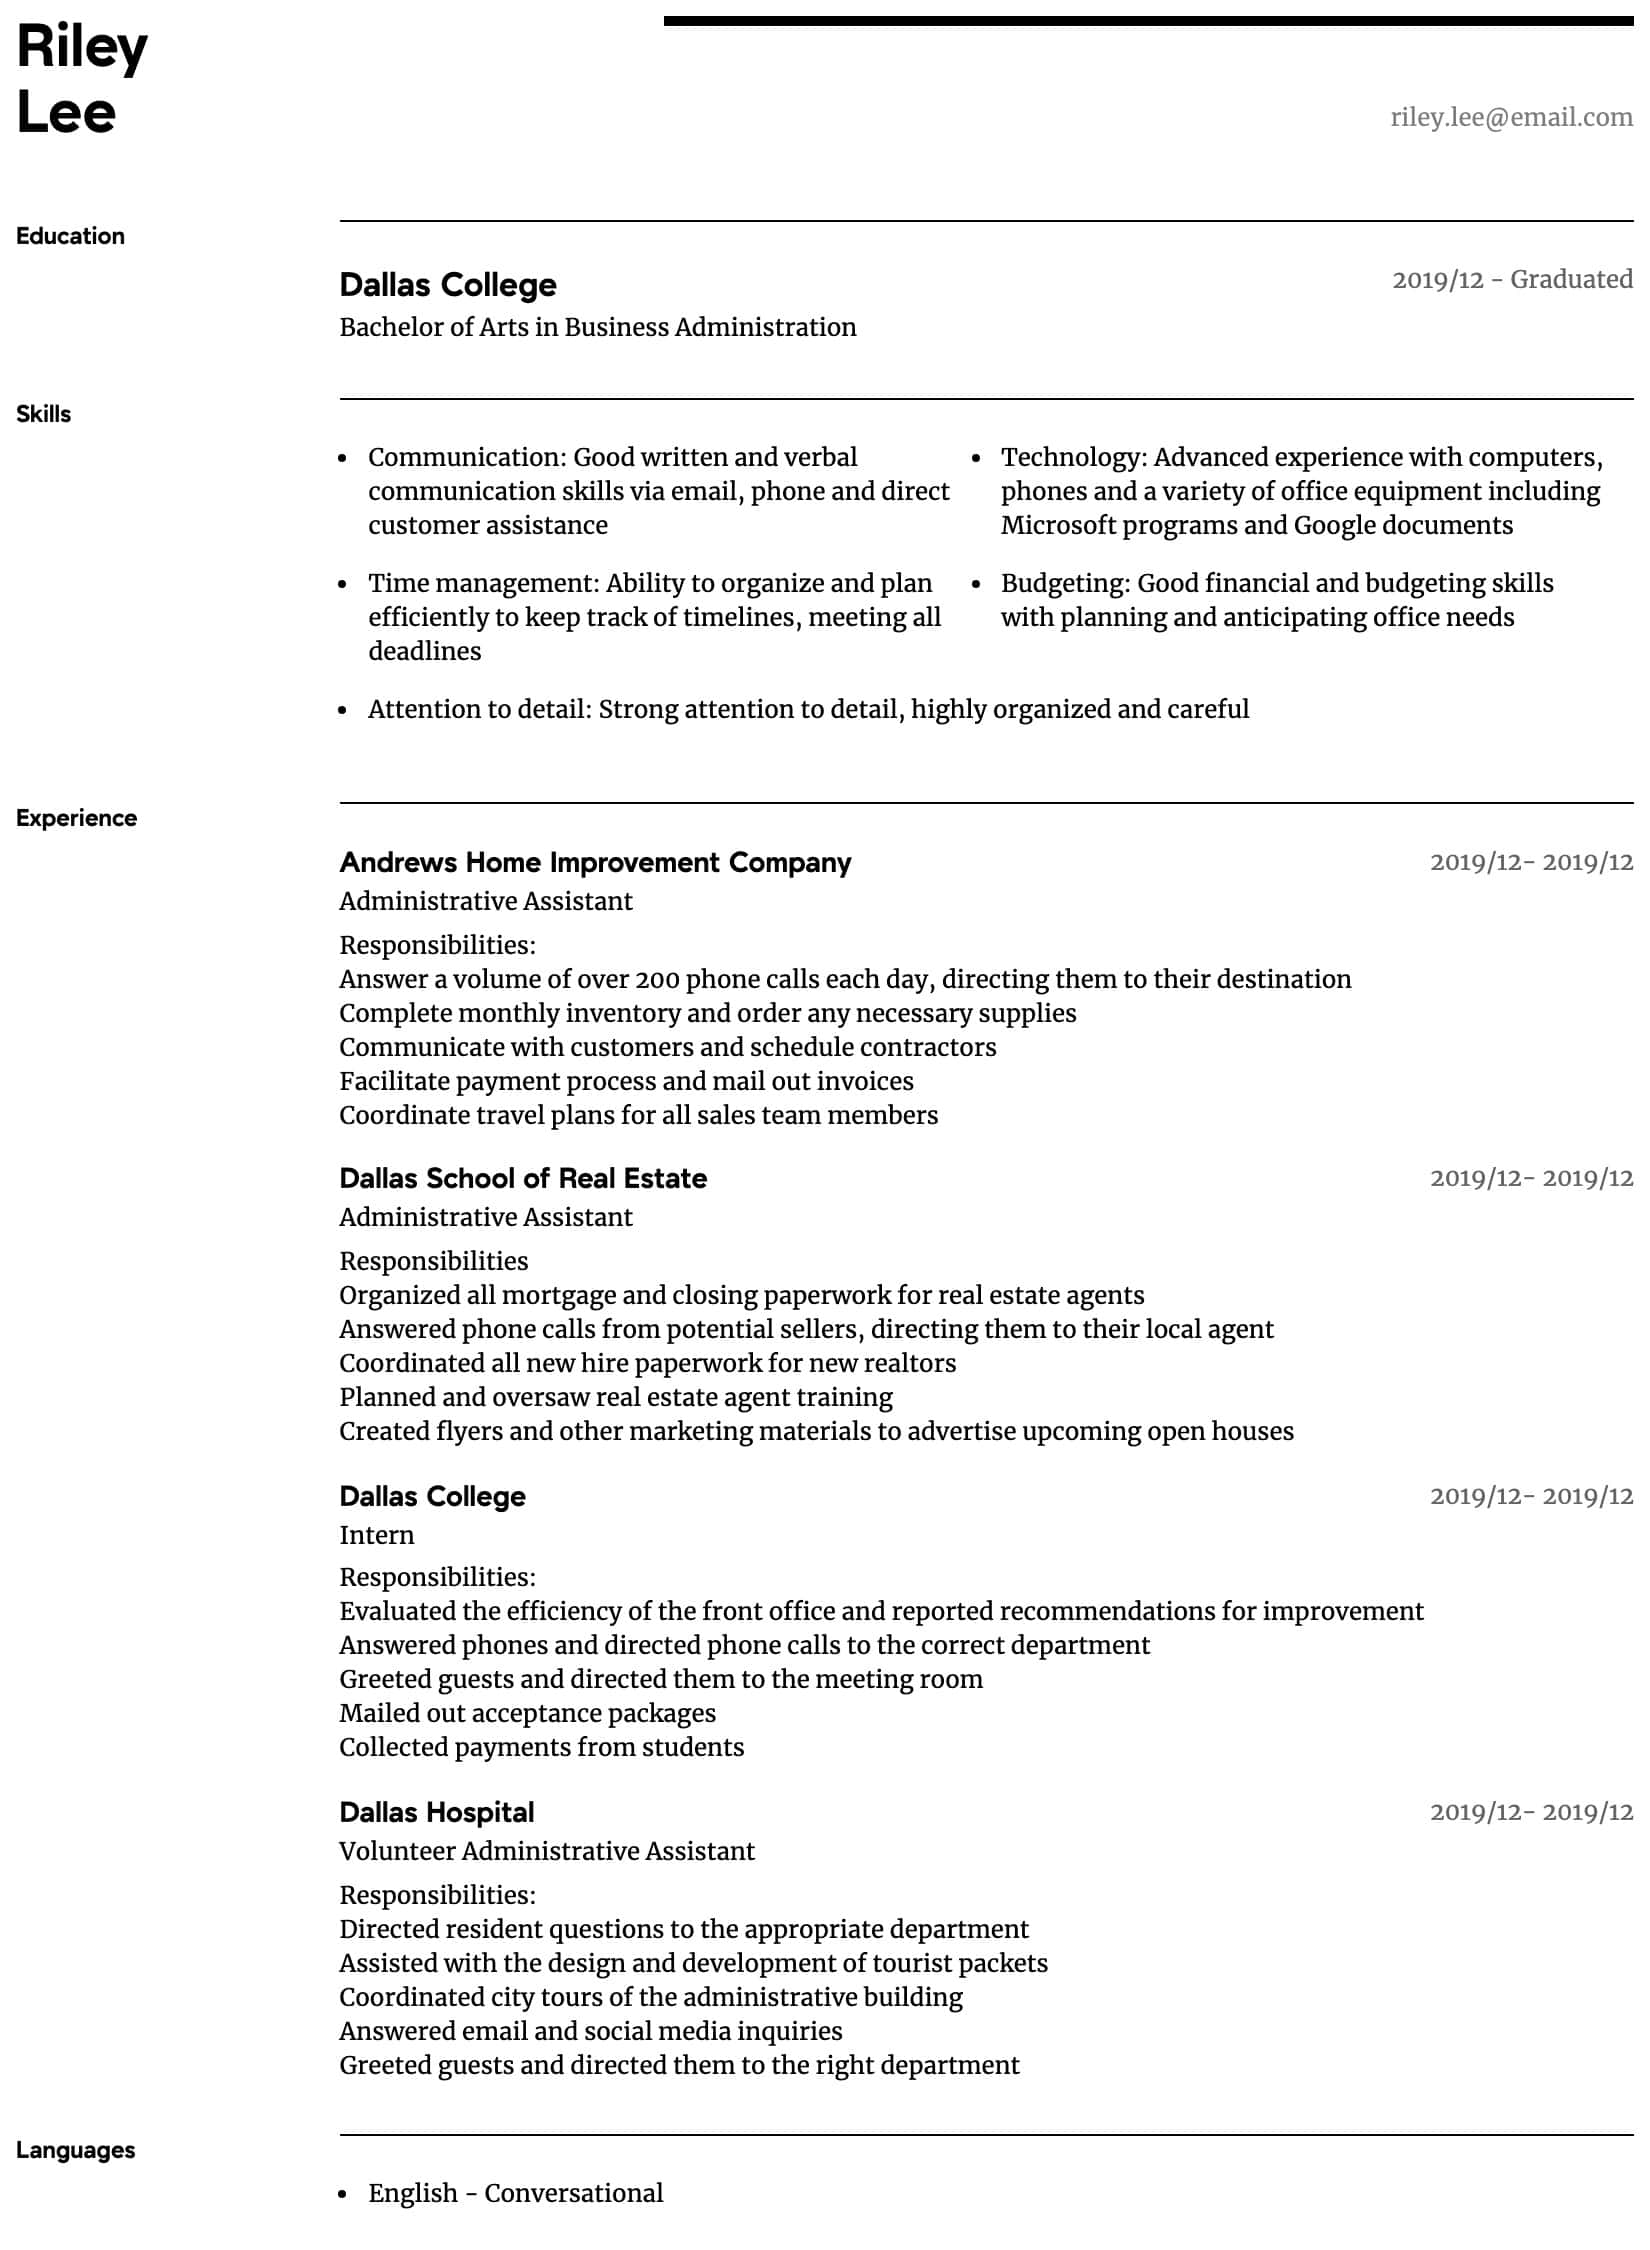 administrative assistant resume samples all experience levels home improvement Resume Home Improvement Resume